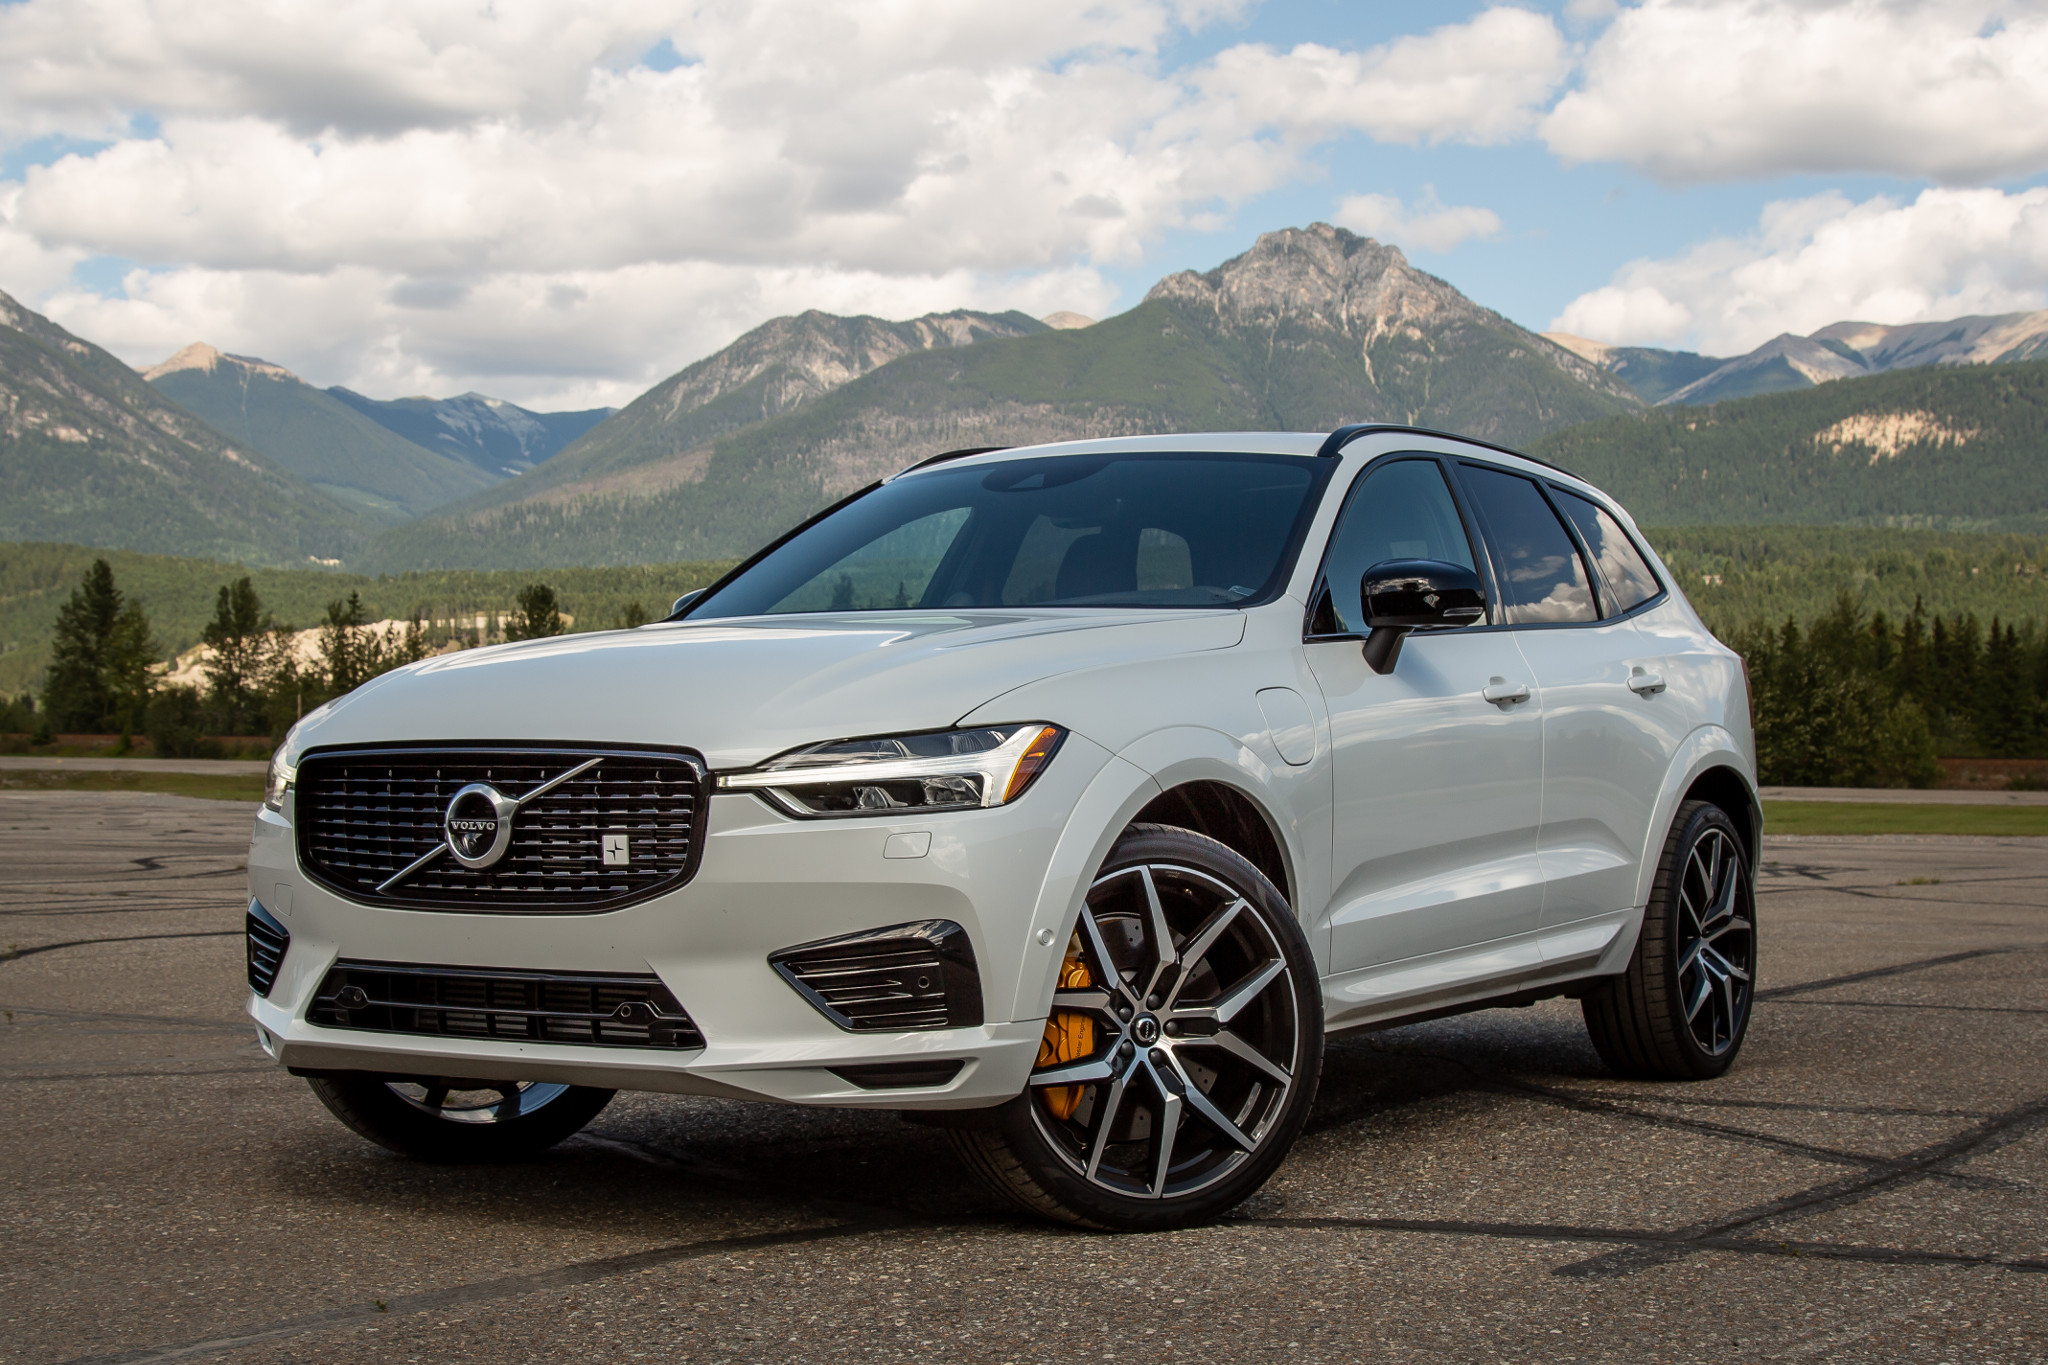 2020 Volvo XC60 T8 Polestar Engineered Review: Smooth, Not Sporty